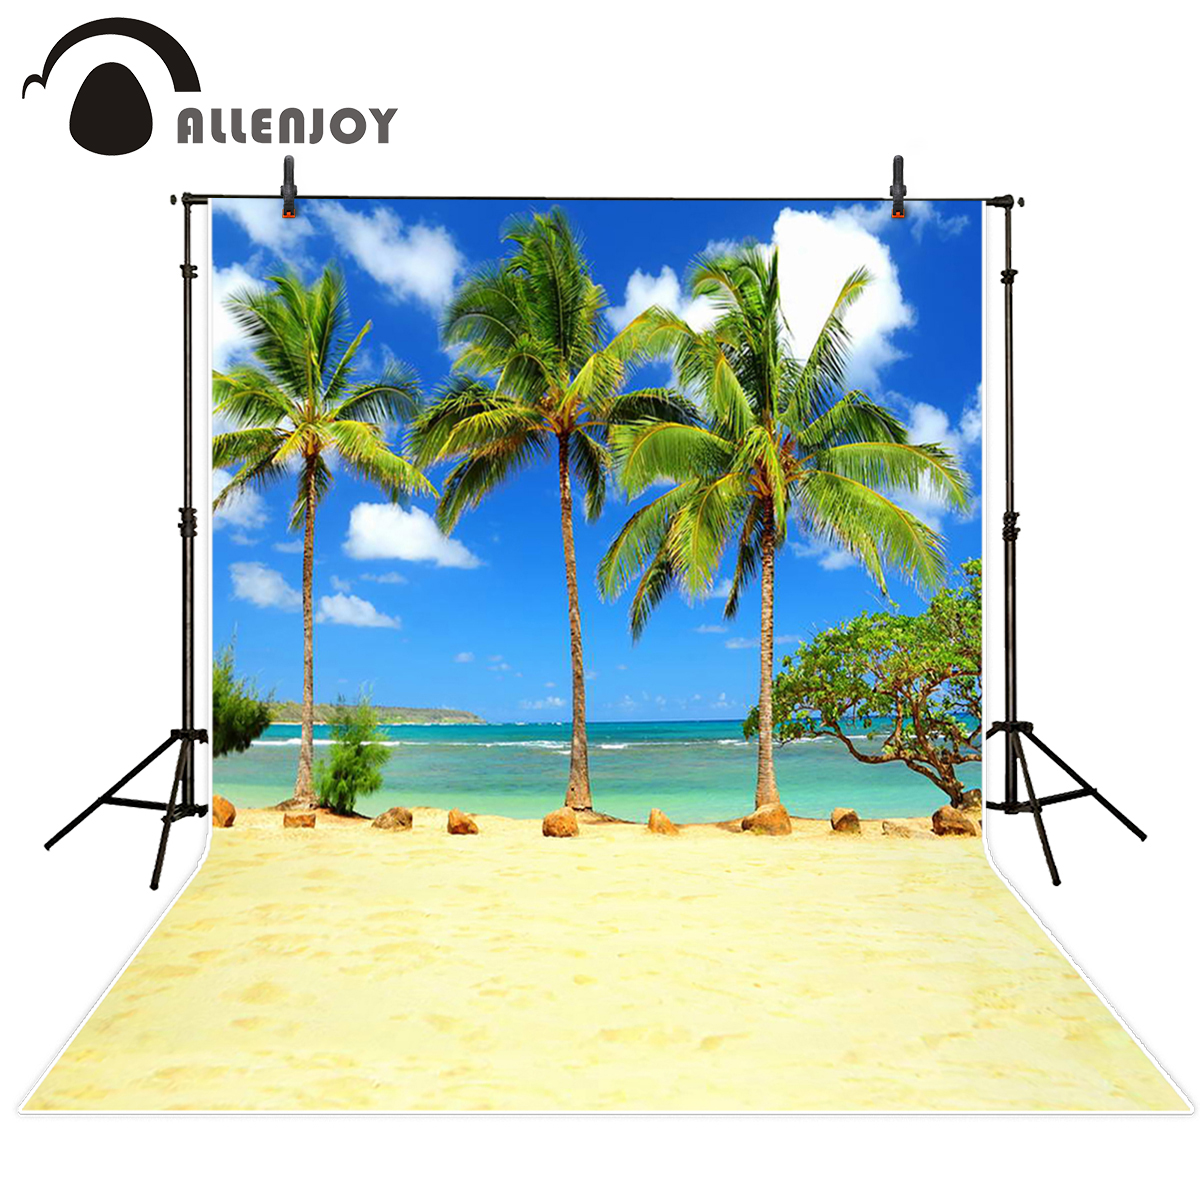 Allenjoy backdrops beach coconut tree waves sky leisure background photography backdrop for photo studio send rolled send rolled sunny sky backdrop vintage white cloud blue sky printed fabric photography background f0150